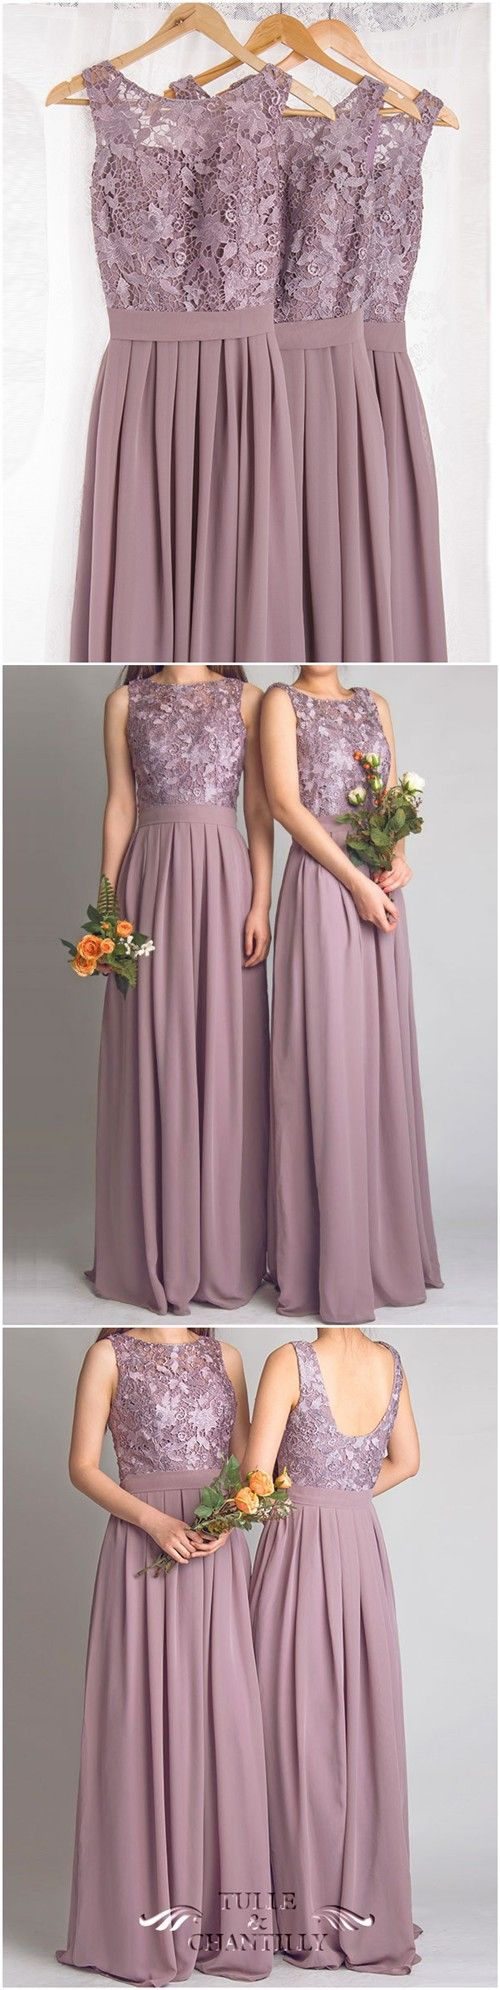 In mauve pink perfect bridesmaid dresses